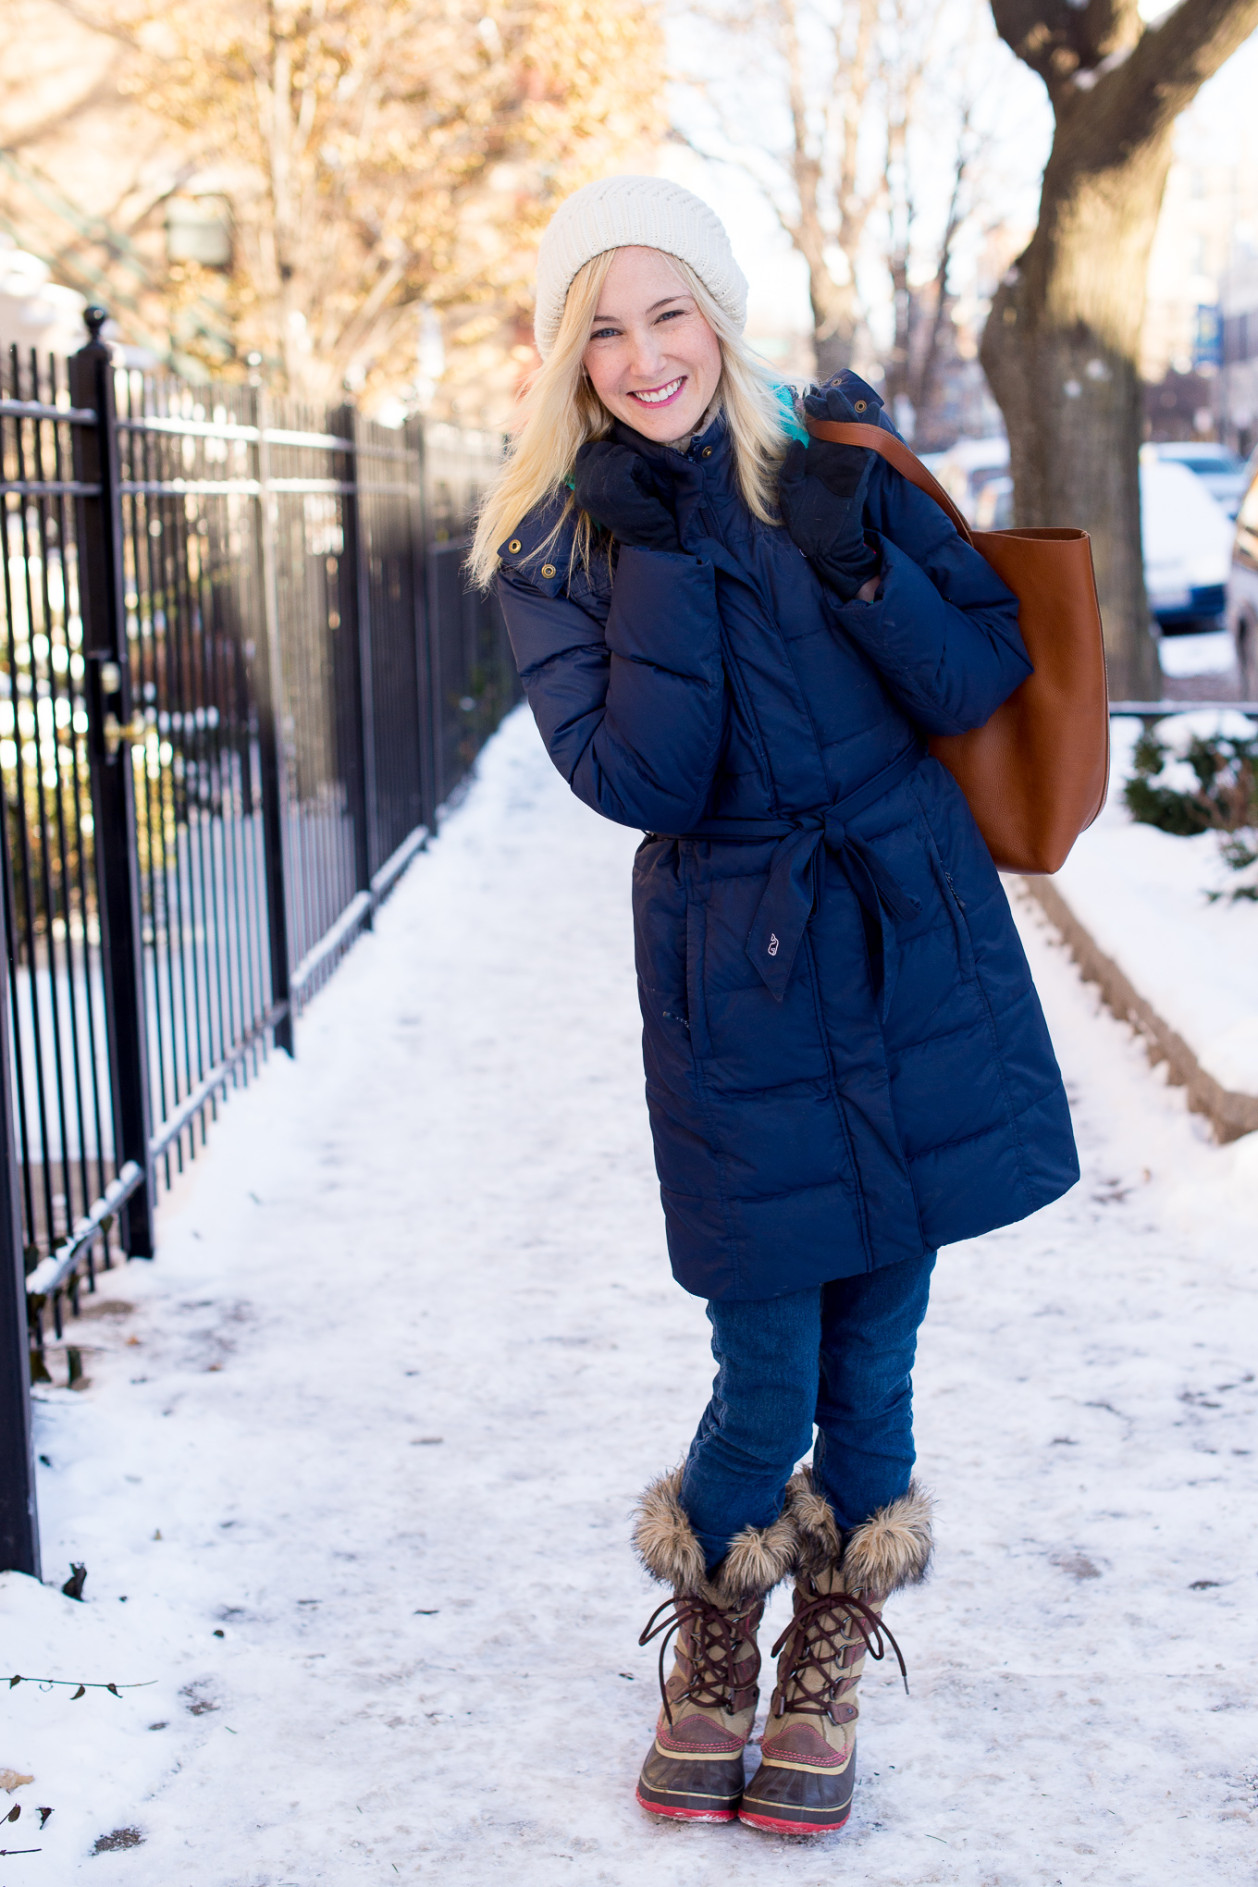 150b39305 Tips For How to Survive a Chicago Winter - Kelly in the City